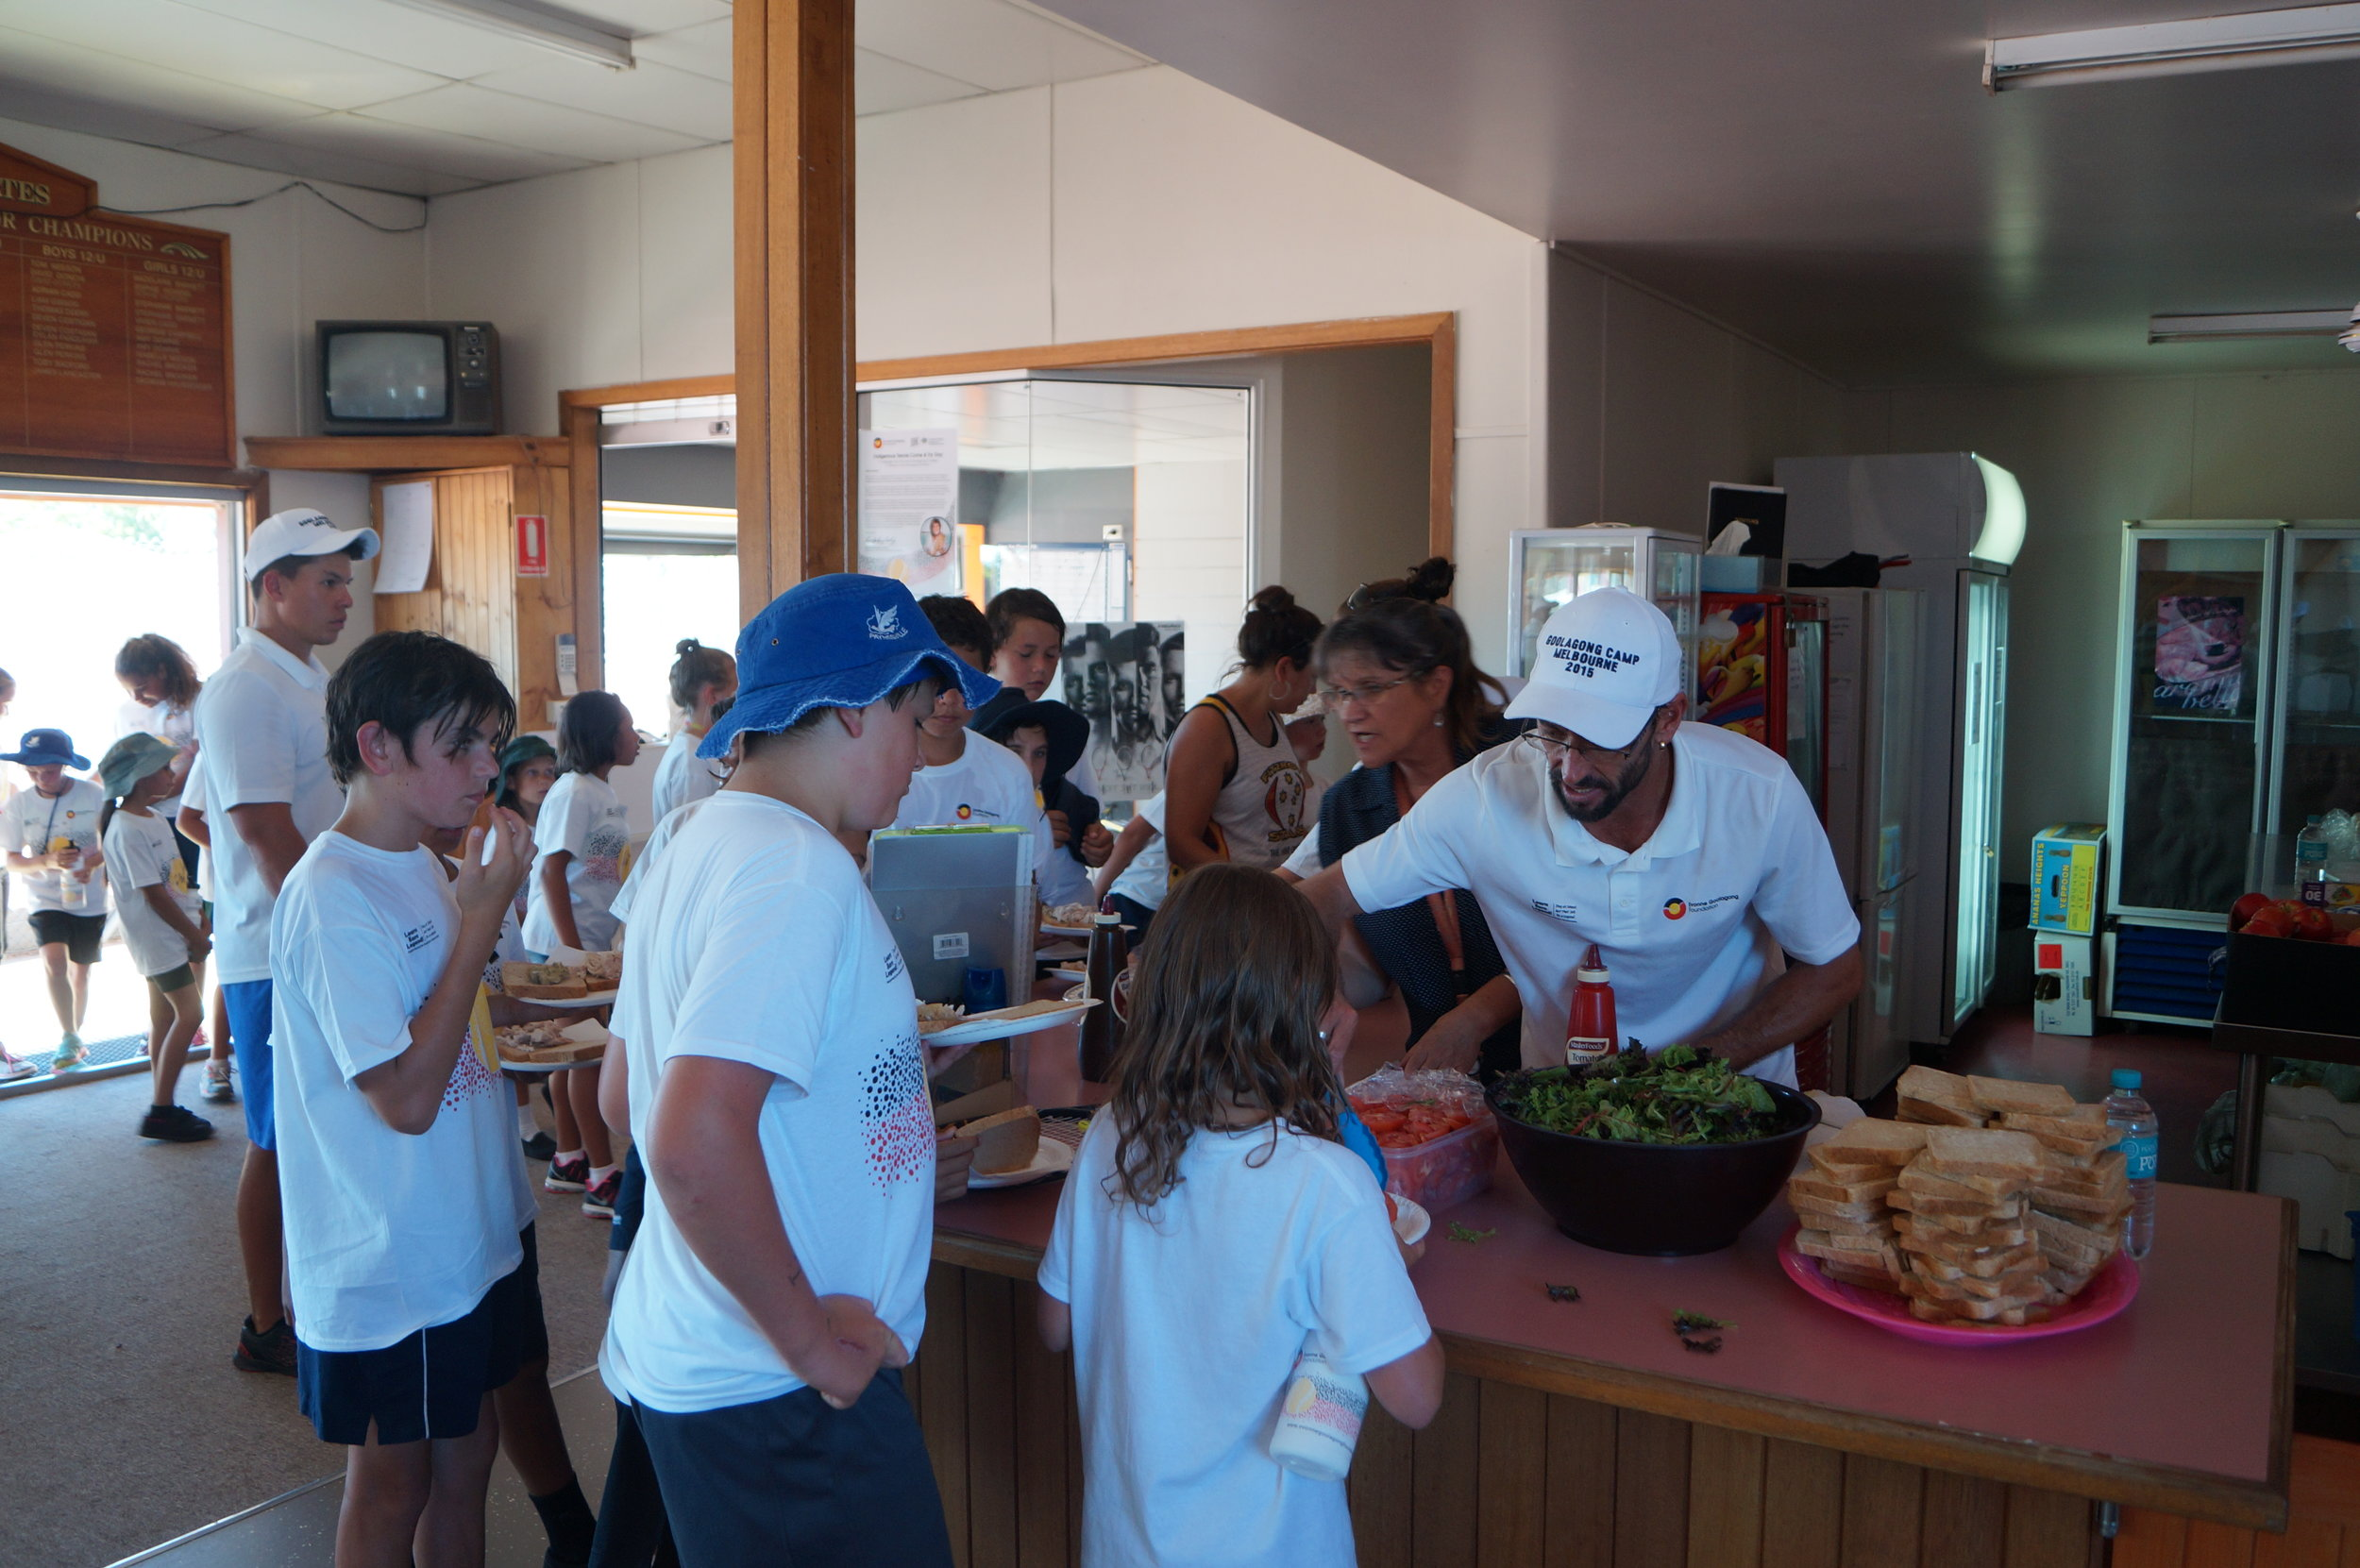 Its time for a healthy lunch in Bairnsdale - wholemeal bread, chicken and lots of salad and fruit!